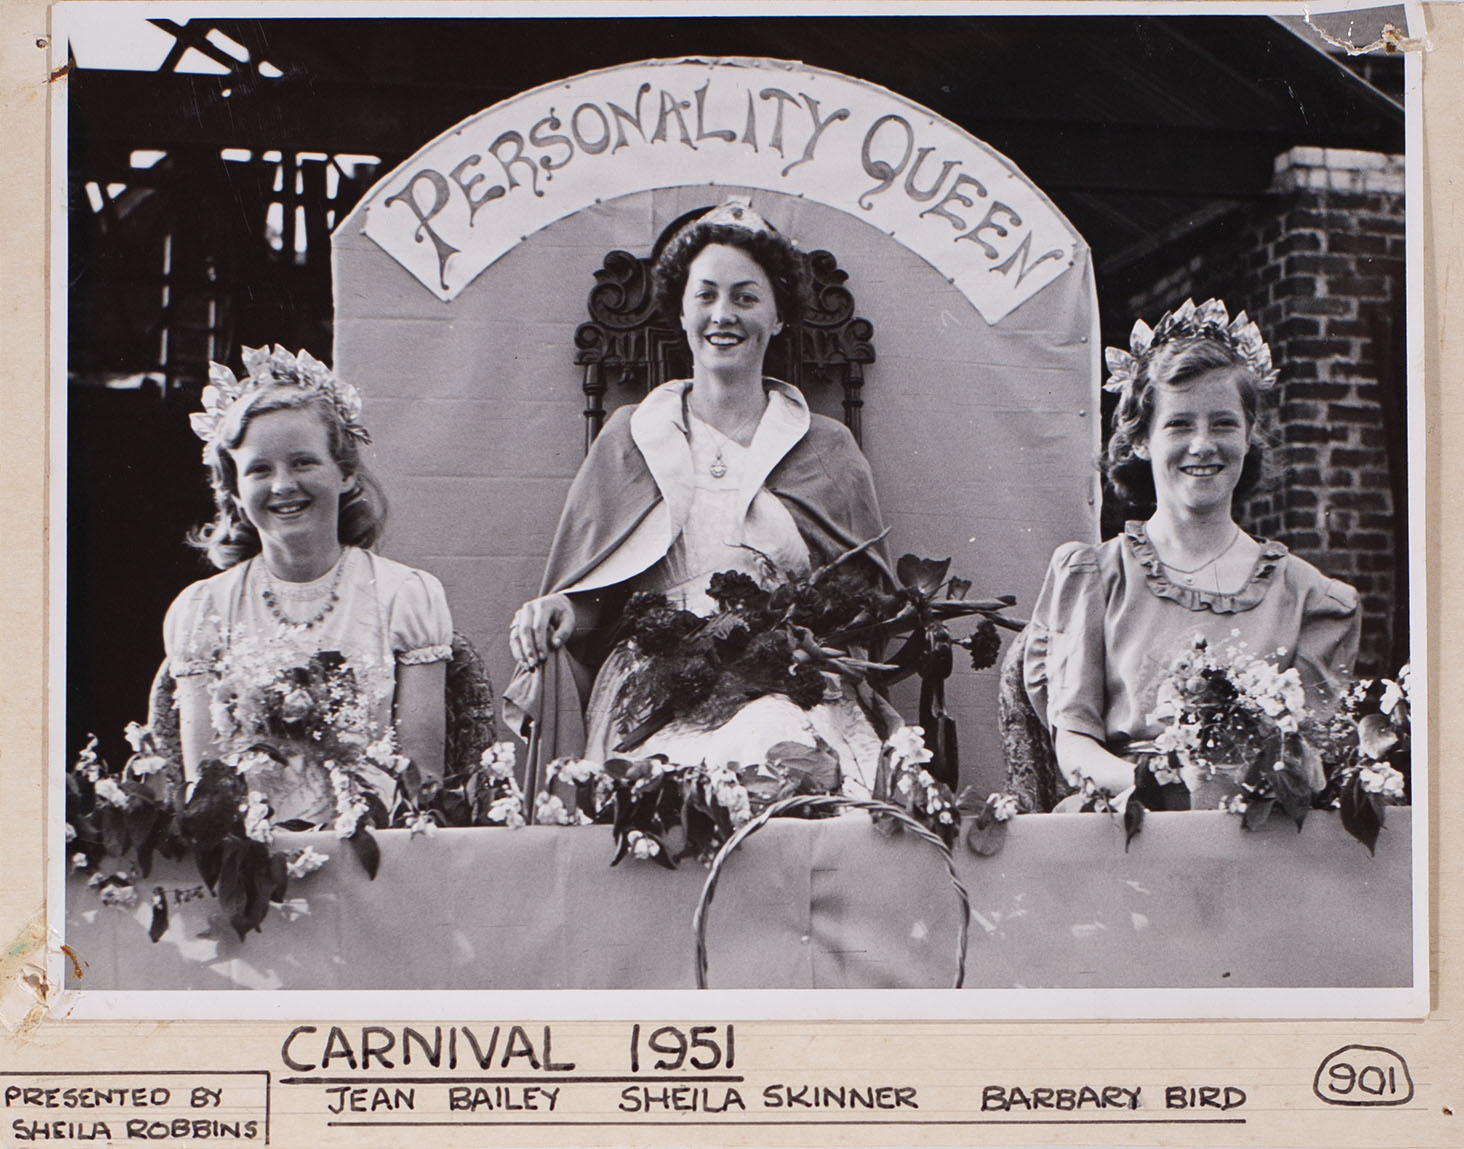 Mounted photograph of Bishopsteignton Carnival 1951 Personality Queen and two others